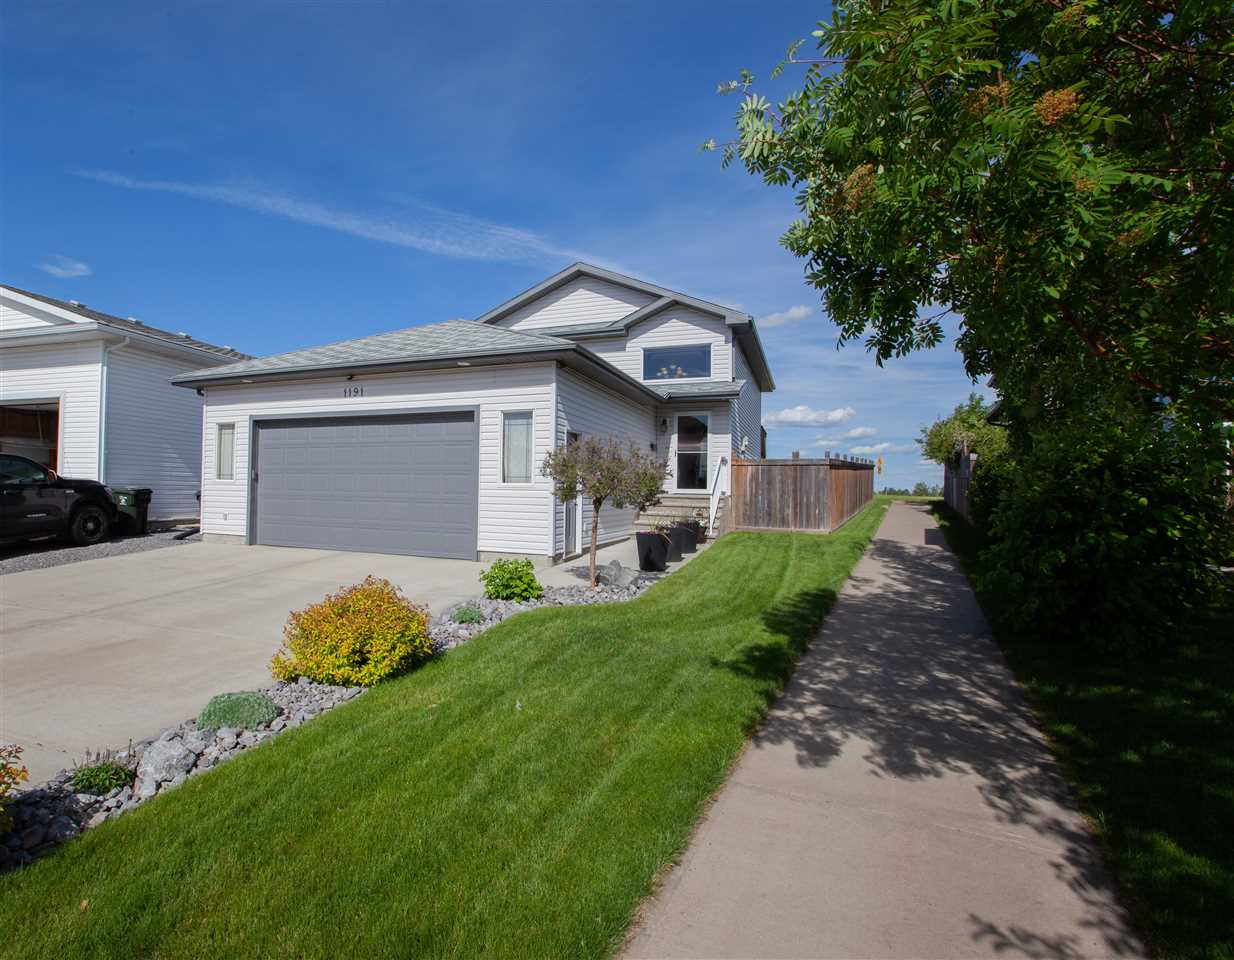 MLS® listing #E4161457 for sale located at 1191 OAKLAND Drive